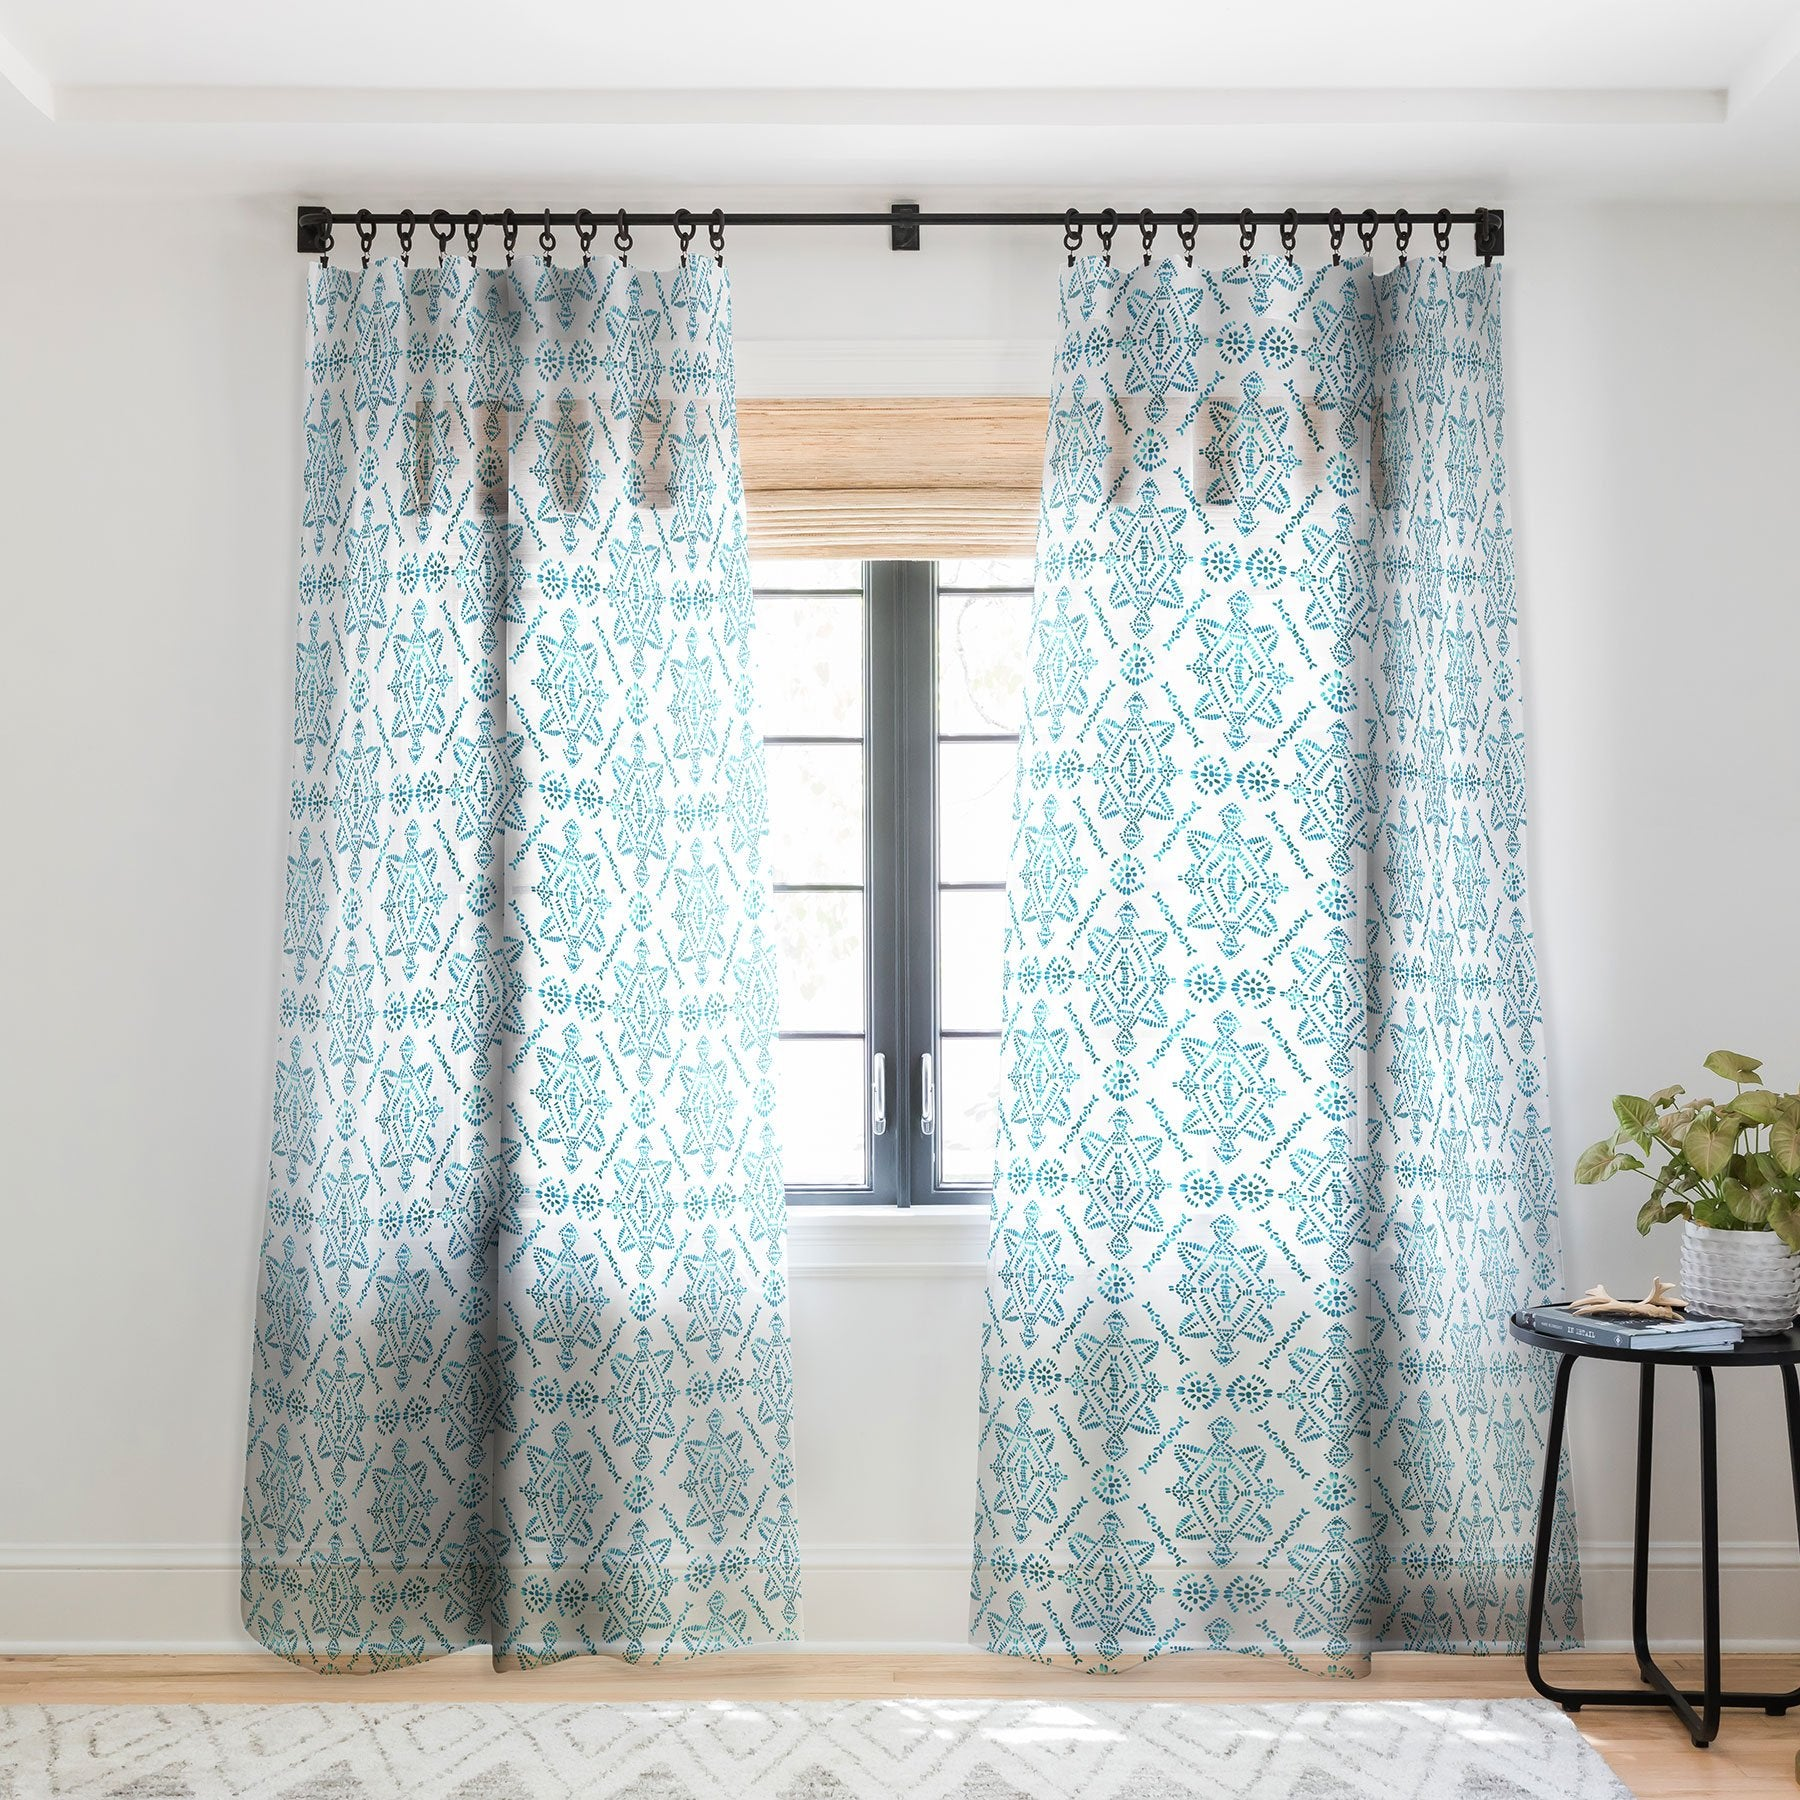 Shop Sheer Window Curtains